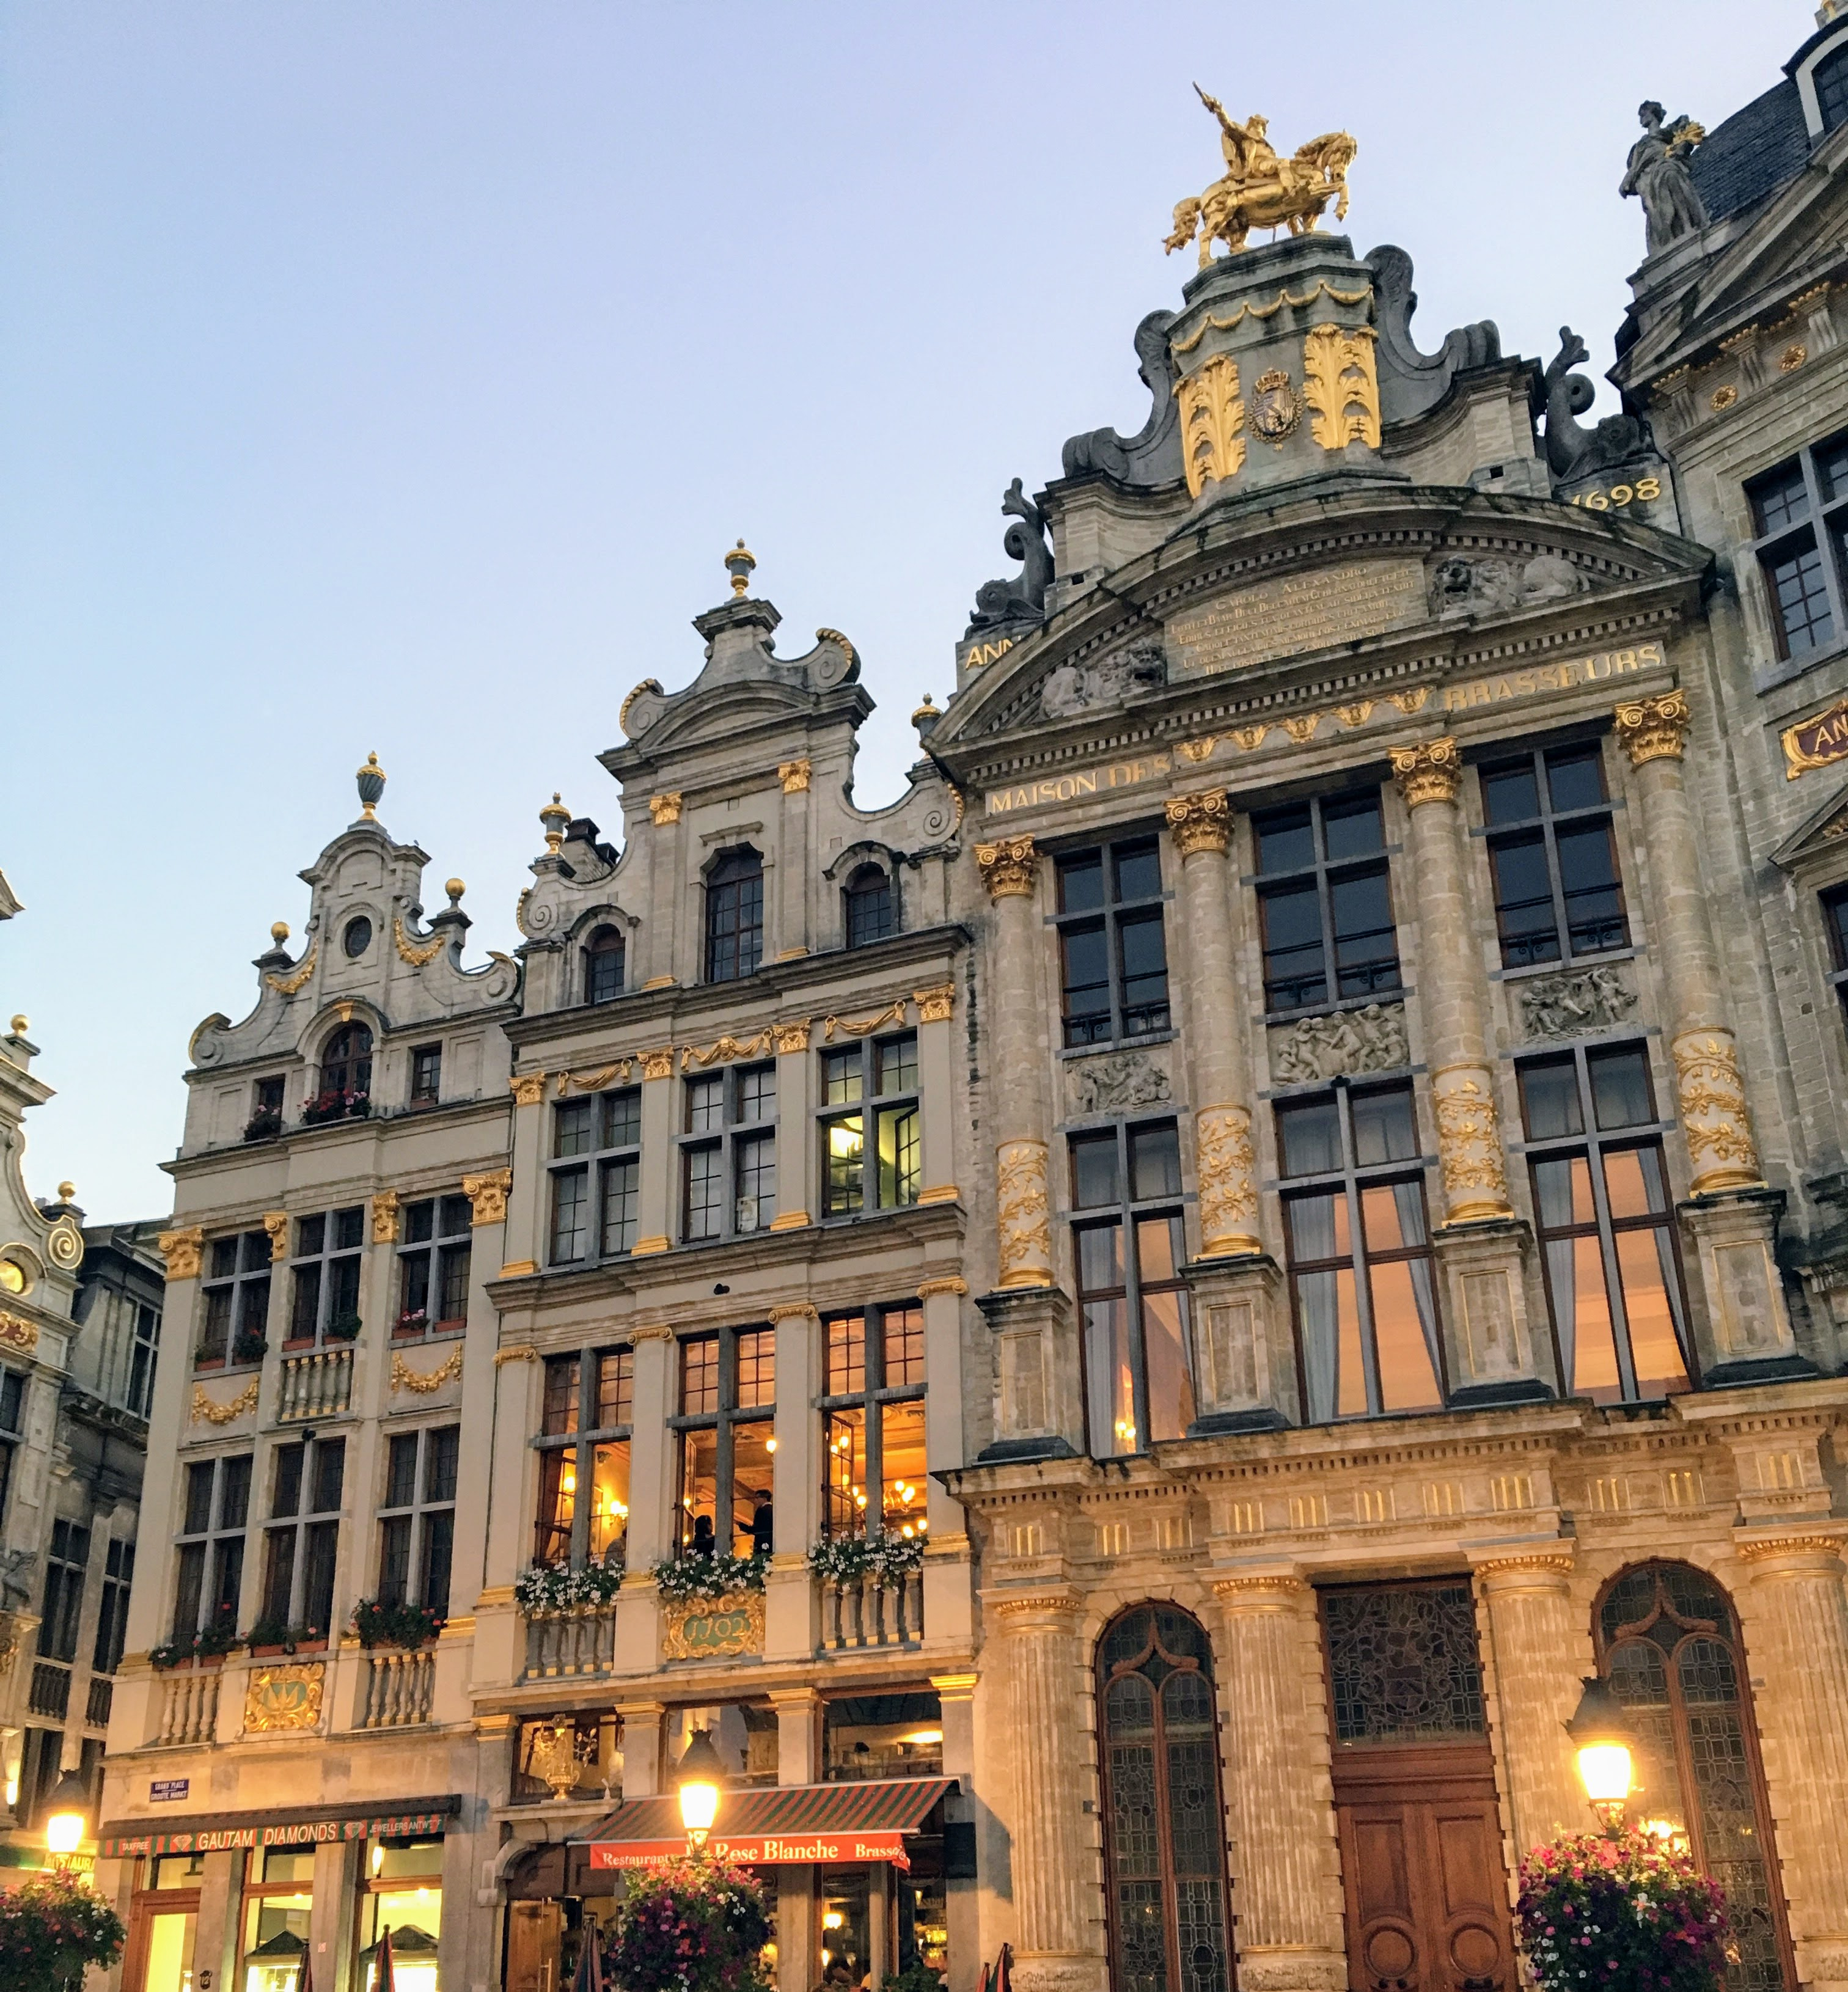 The Grand Place architecture in Brussels, Belgium